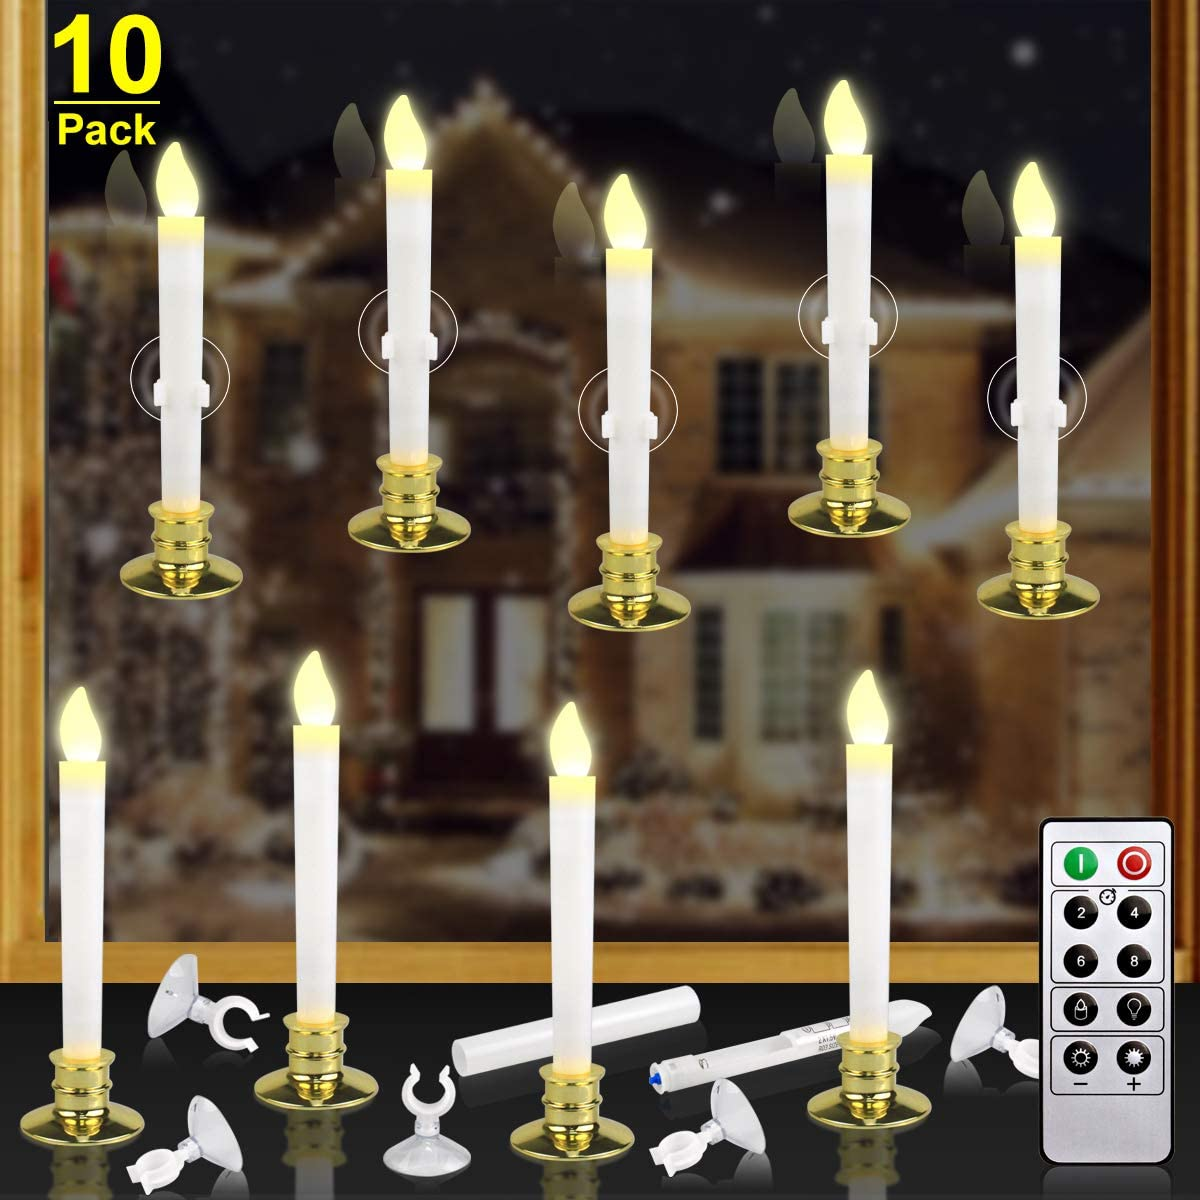 Kithouse 10 Set Christmas Window Candles Lights with Timer Battery Operated Electric LED Taper Candles Flameless Flickering for Windows Christmas Decor, Gold Candle Holders Suction Cups Included